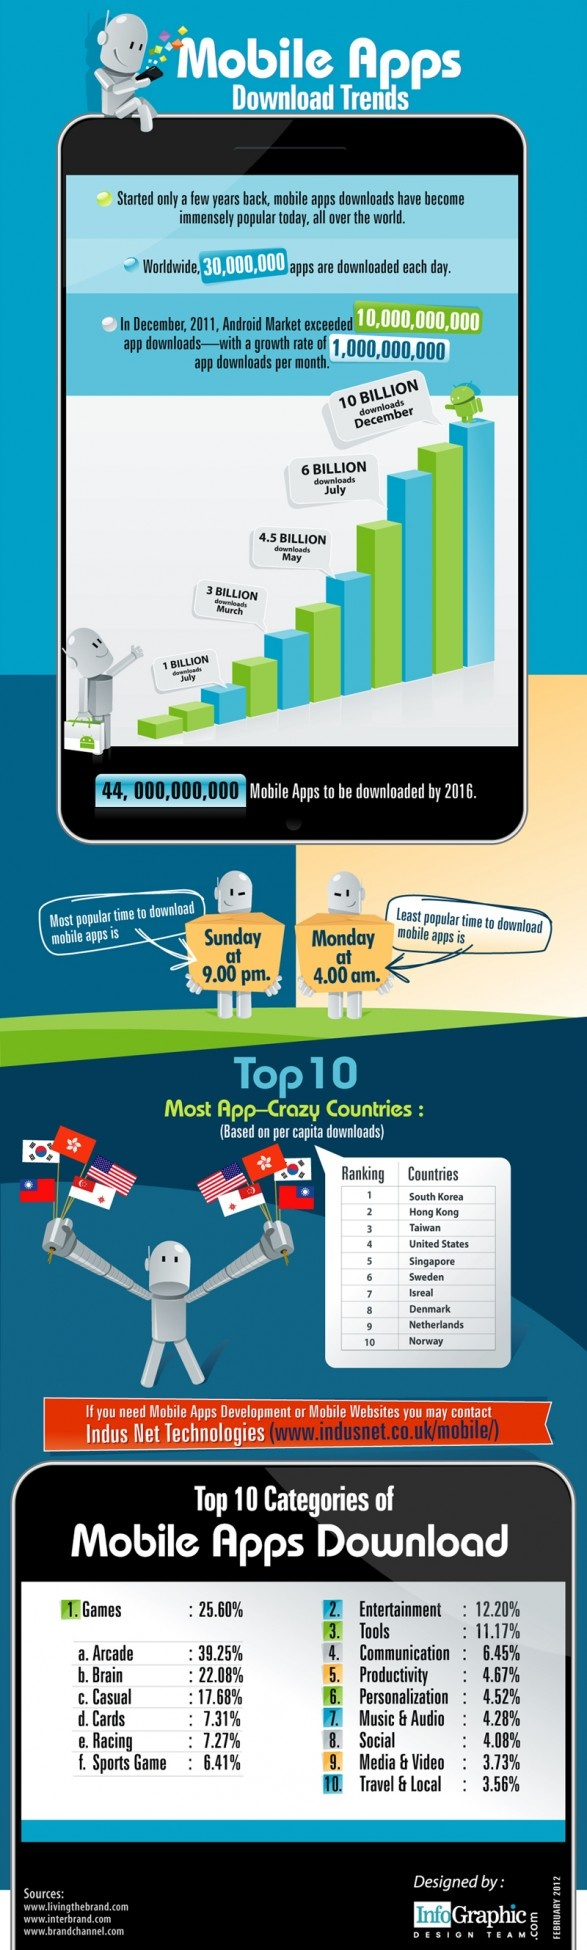 Mobile apps - Downloading trends